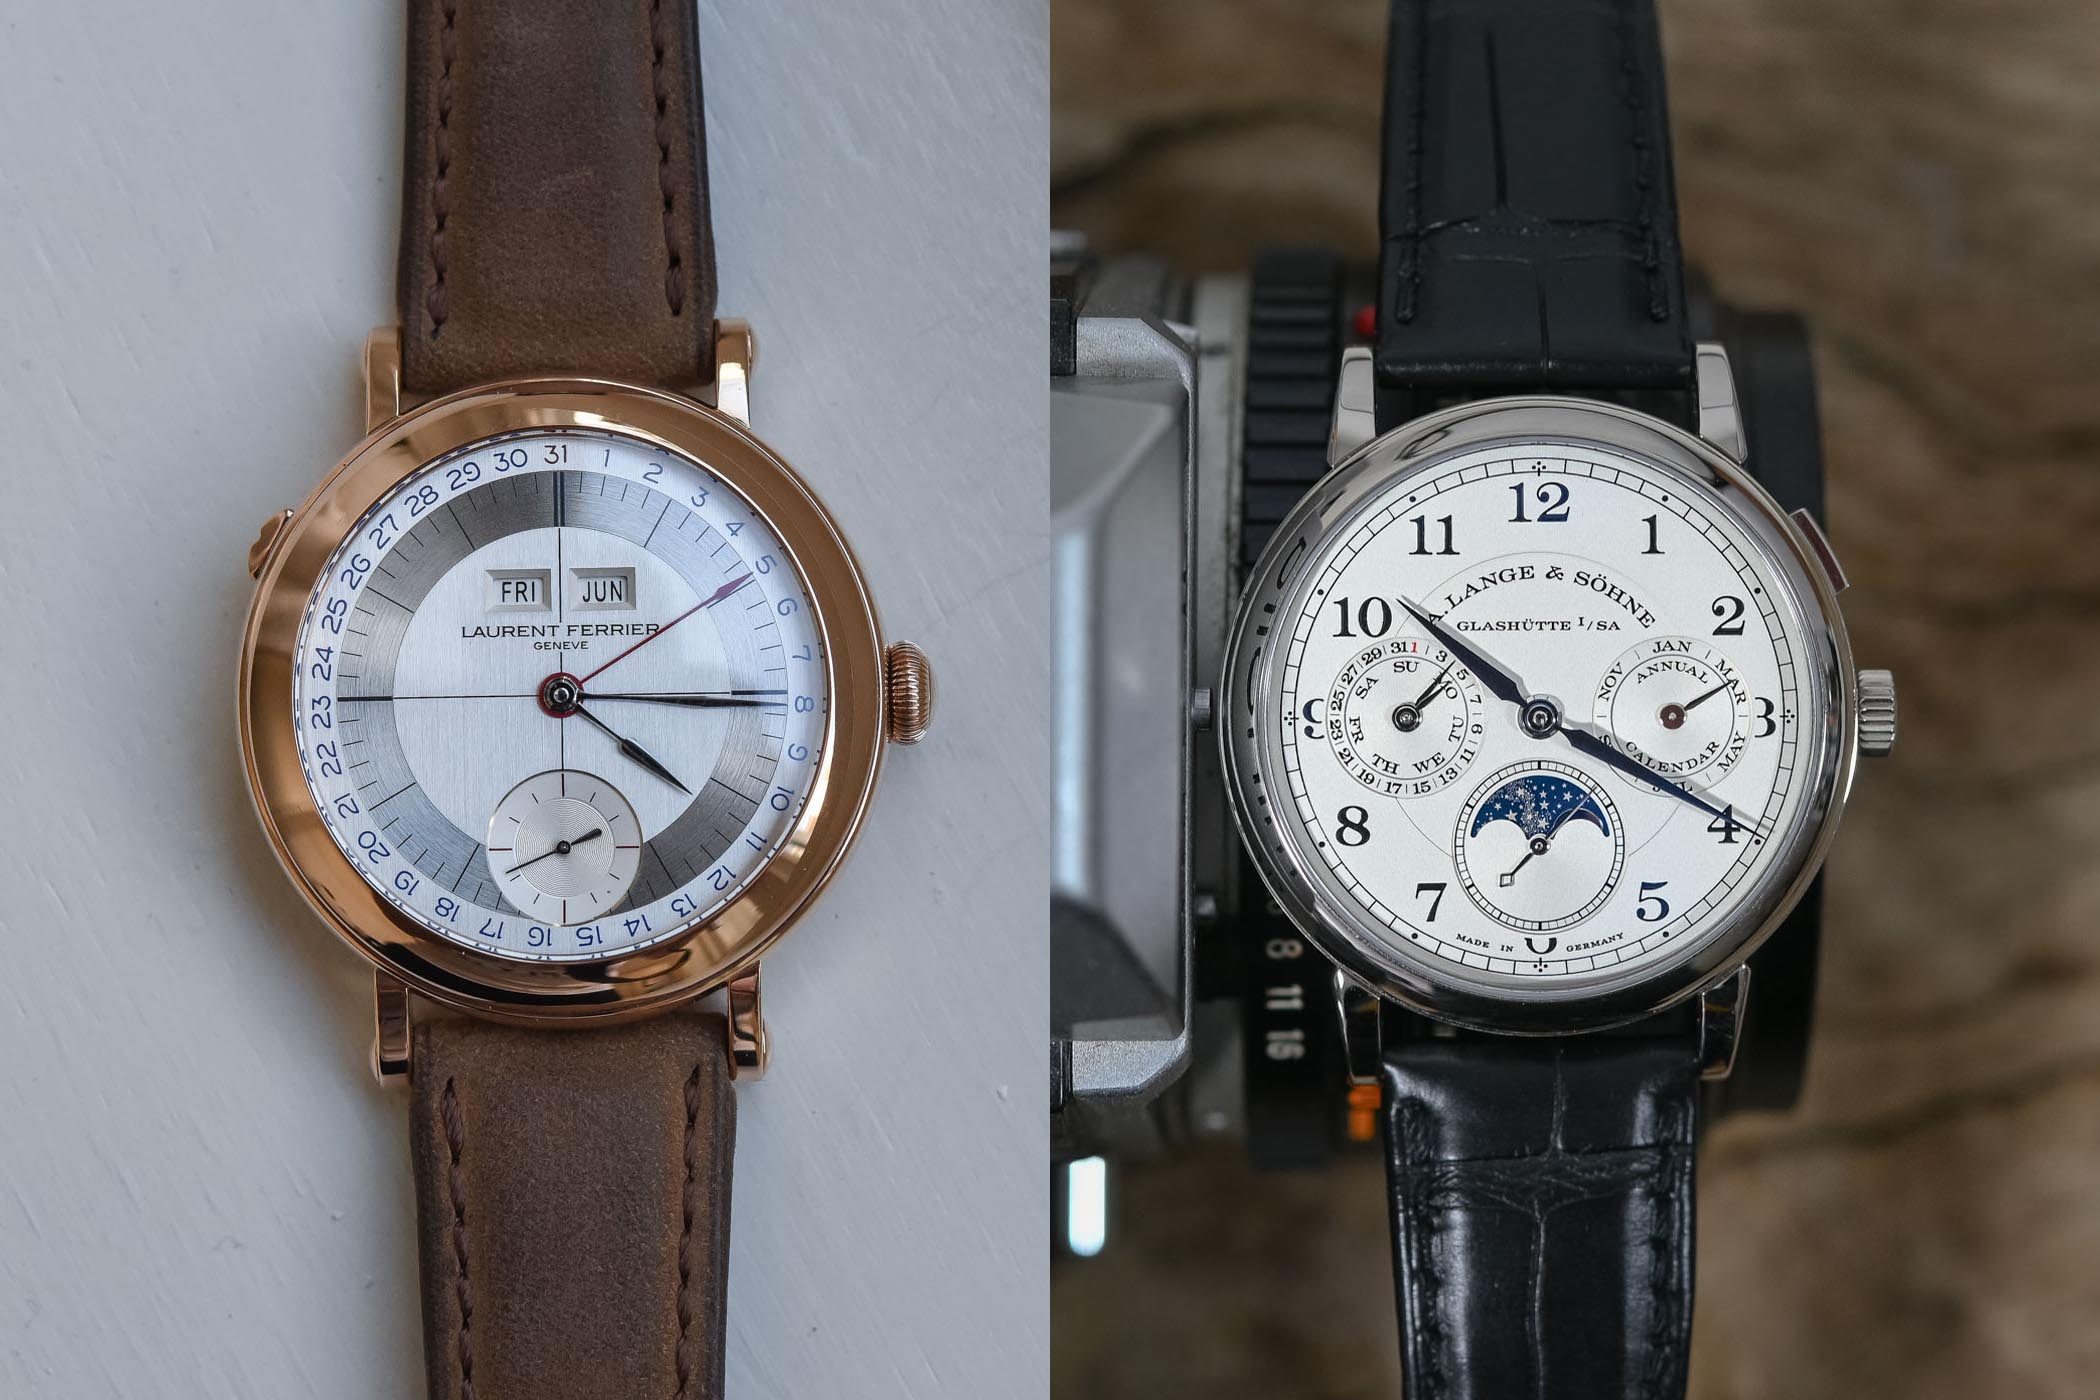 Battle High-end Annual Calendar - Lange 1815 Annual Calendar vs Laurent Ferrier Annual Calendar review